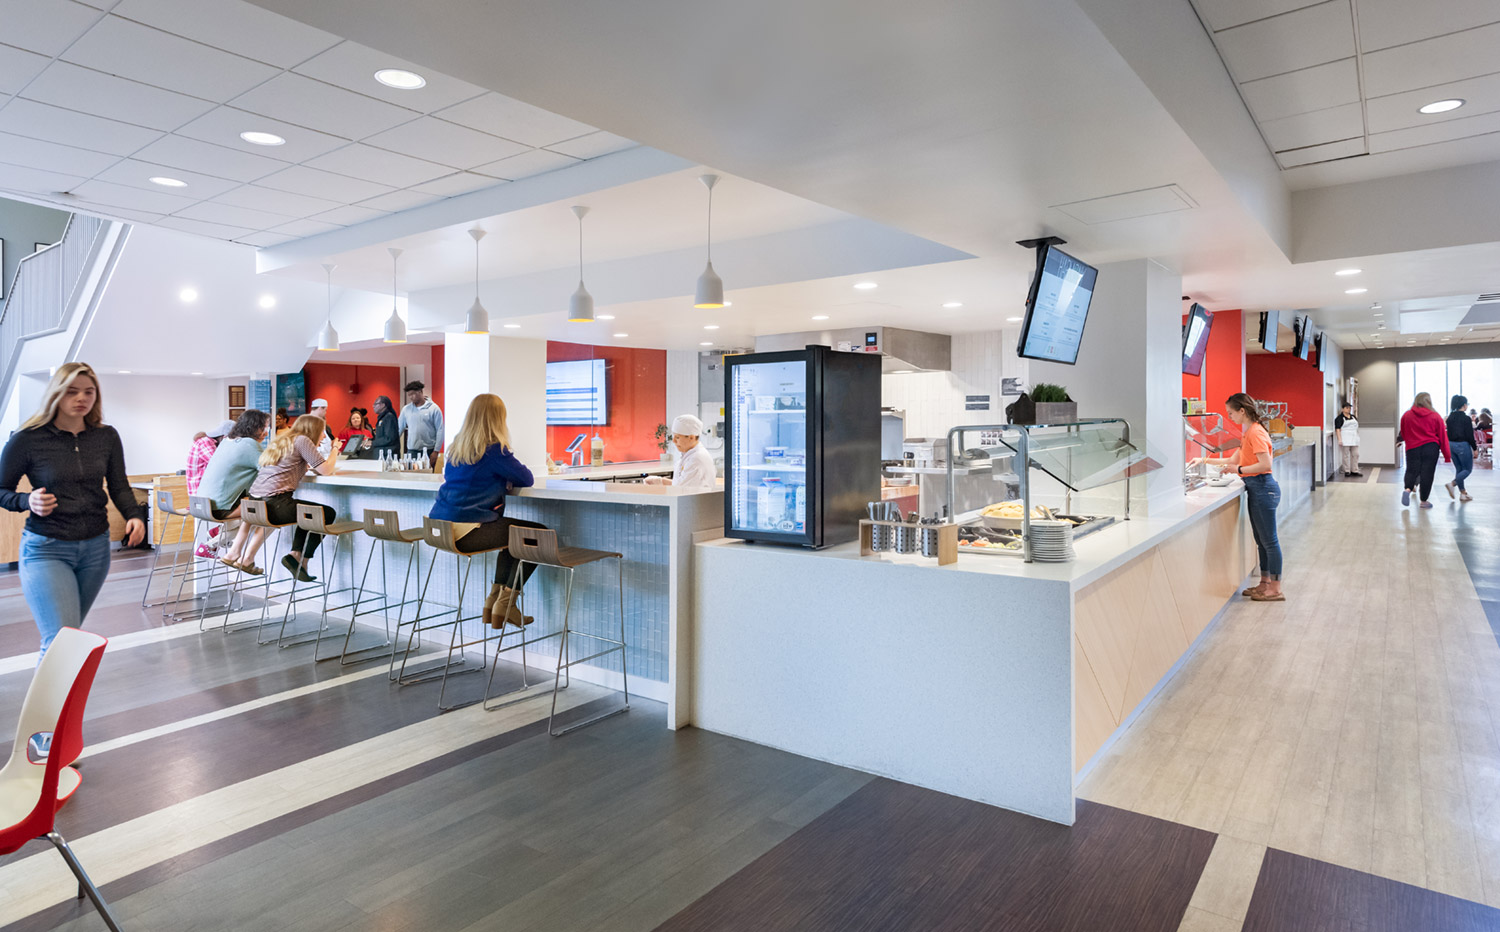 New counter seating areas allow students to dine alongside cooking stations